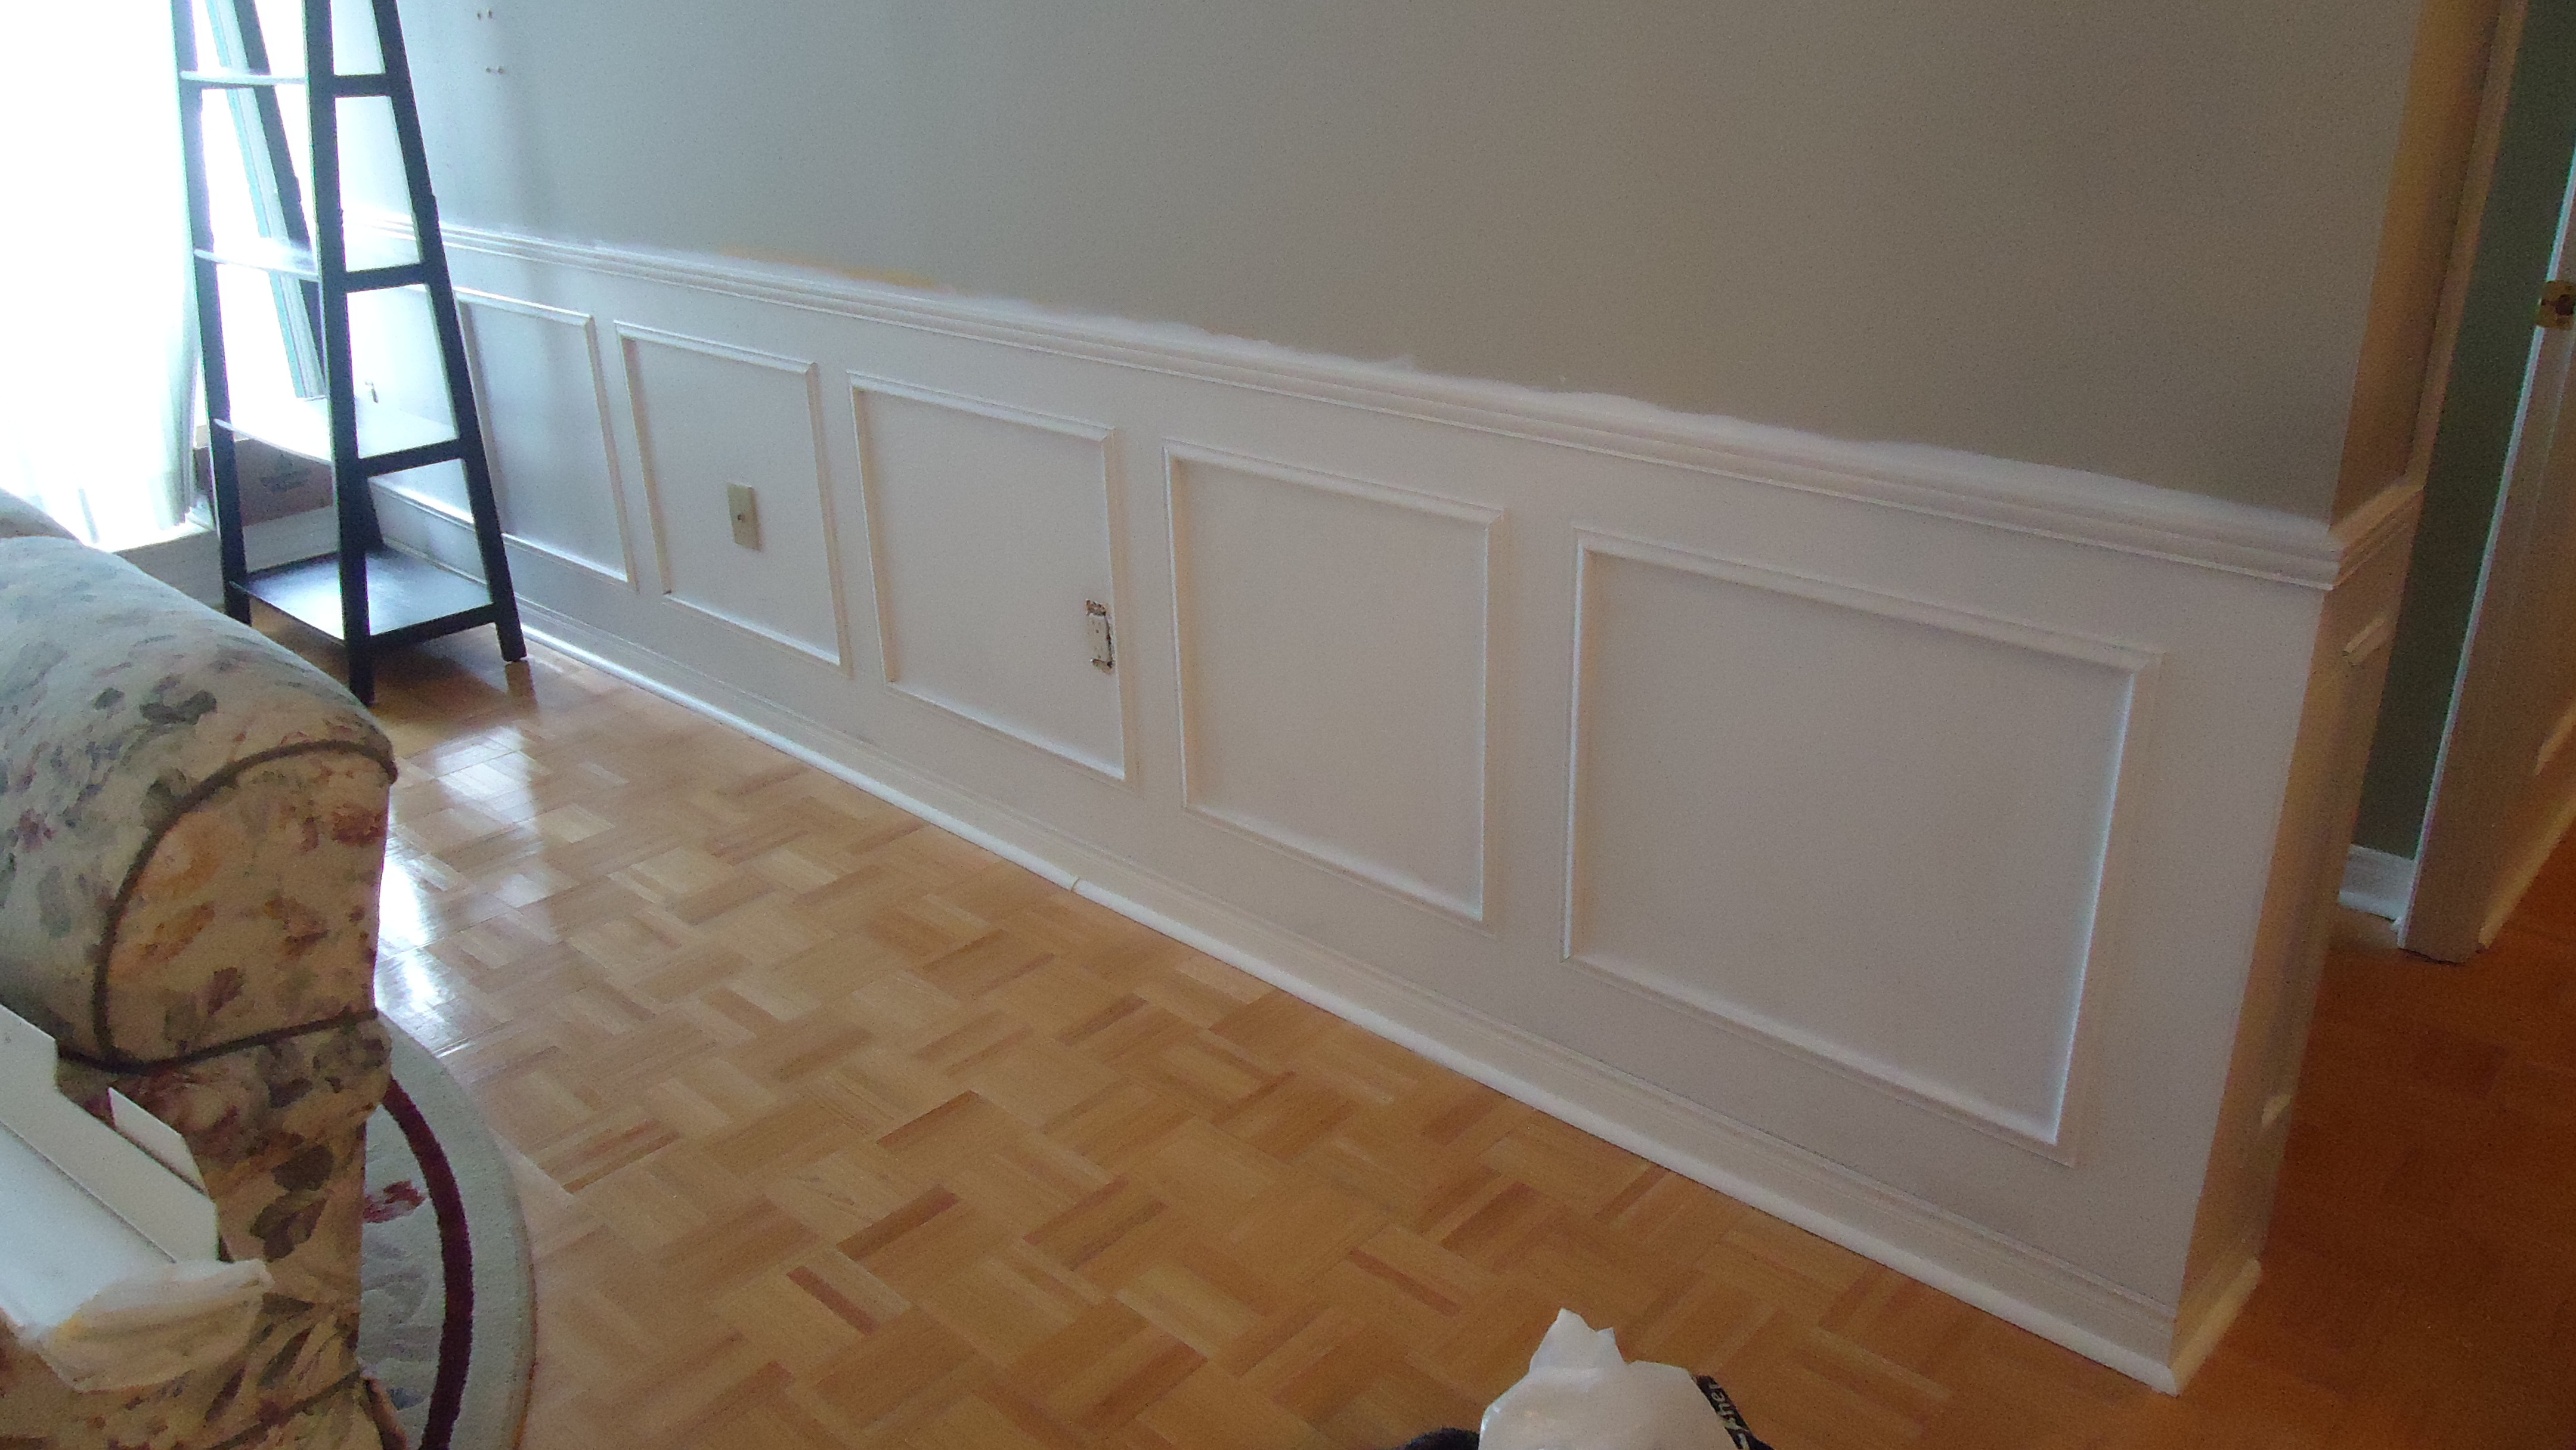 Adding elegance with wainscoting Small Space Style : dsc06305 from smallspacestyle.org size 4320 x 2432 jpeg 2699kB